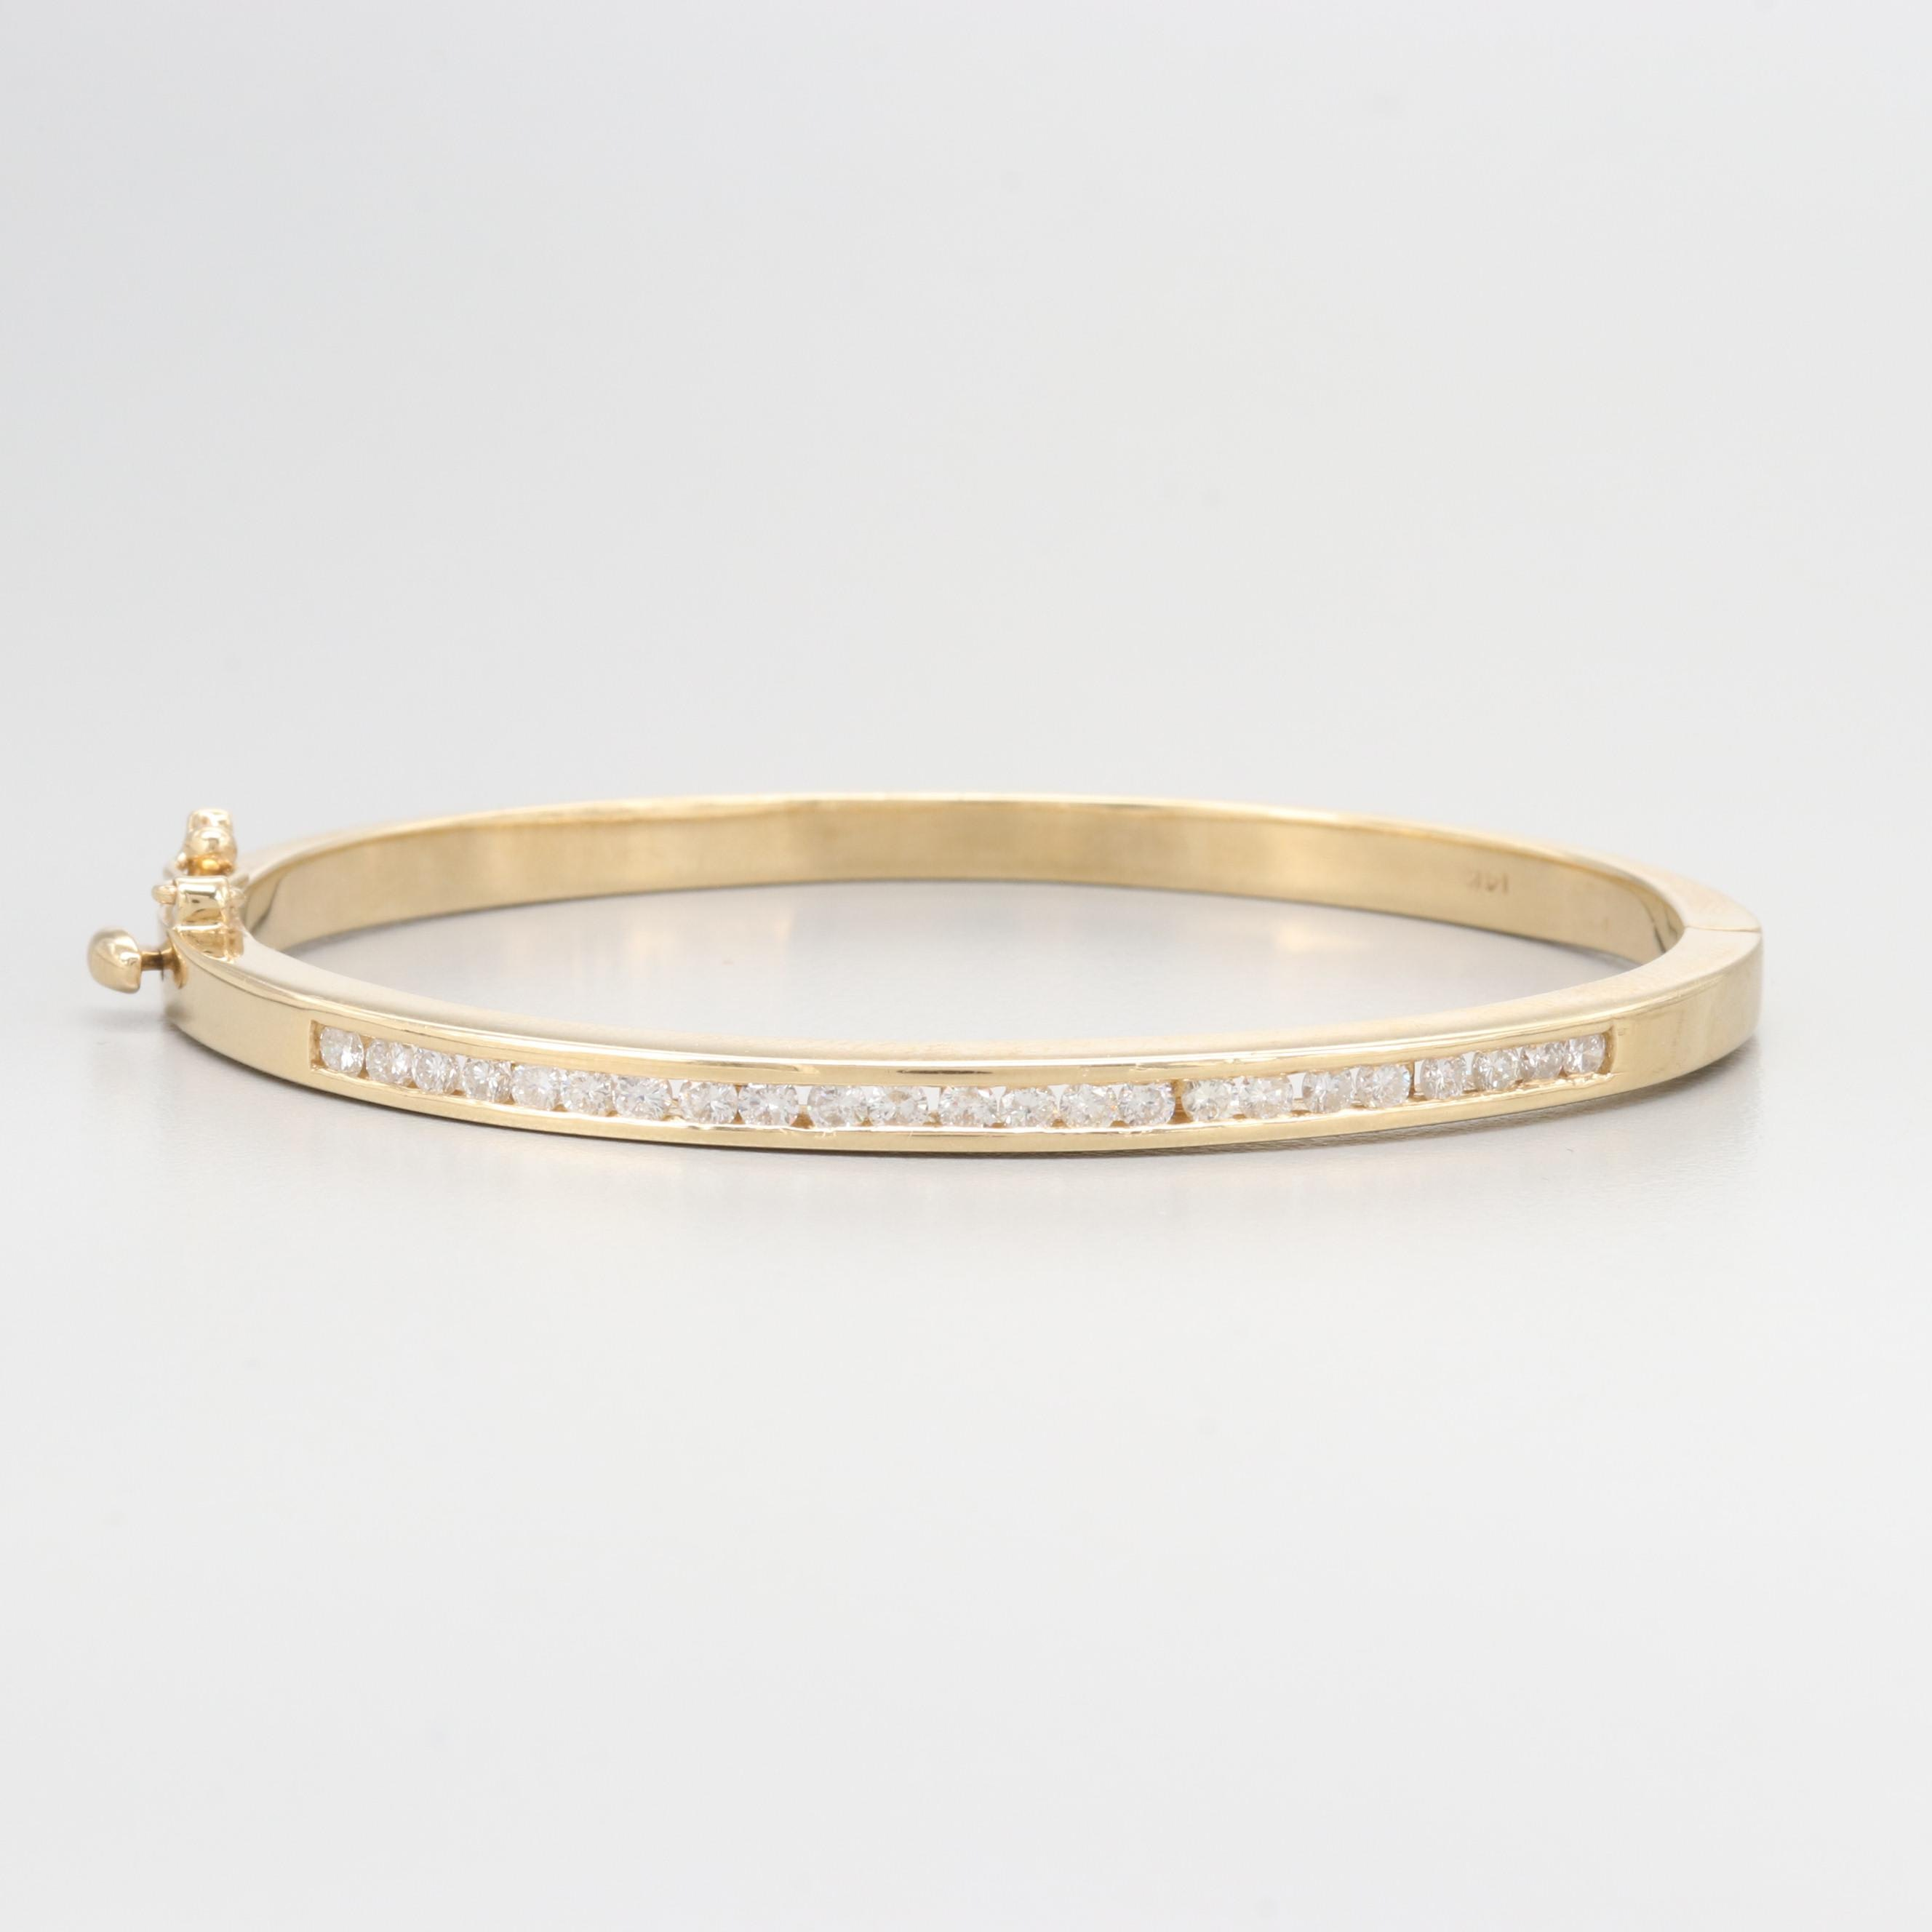 14K Yellow Gold 1.04 CTW Diamond Bracelet